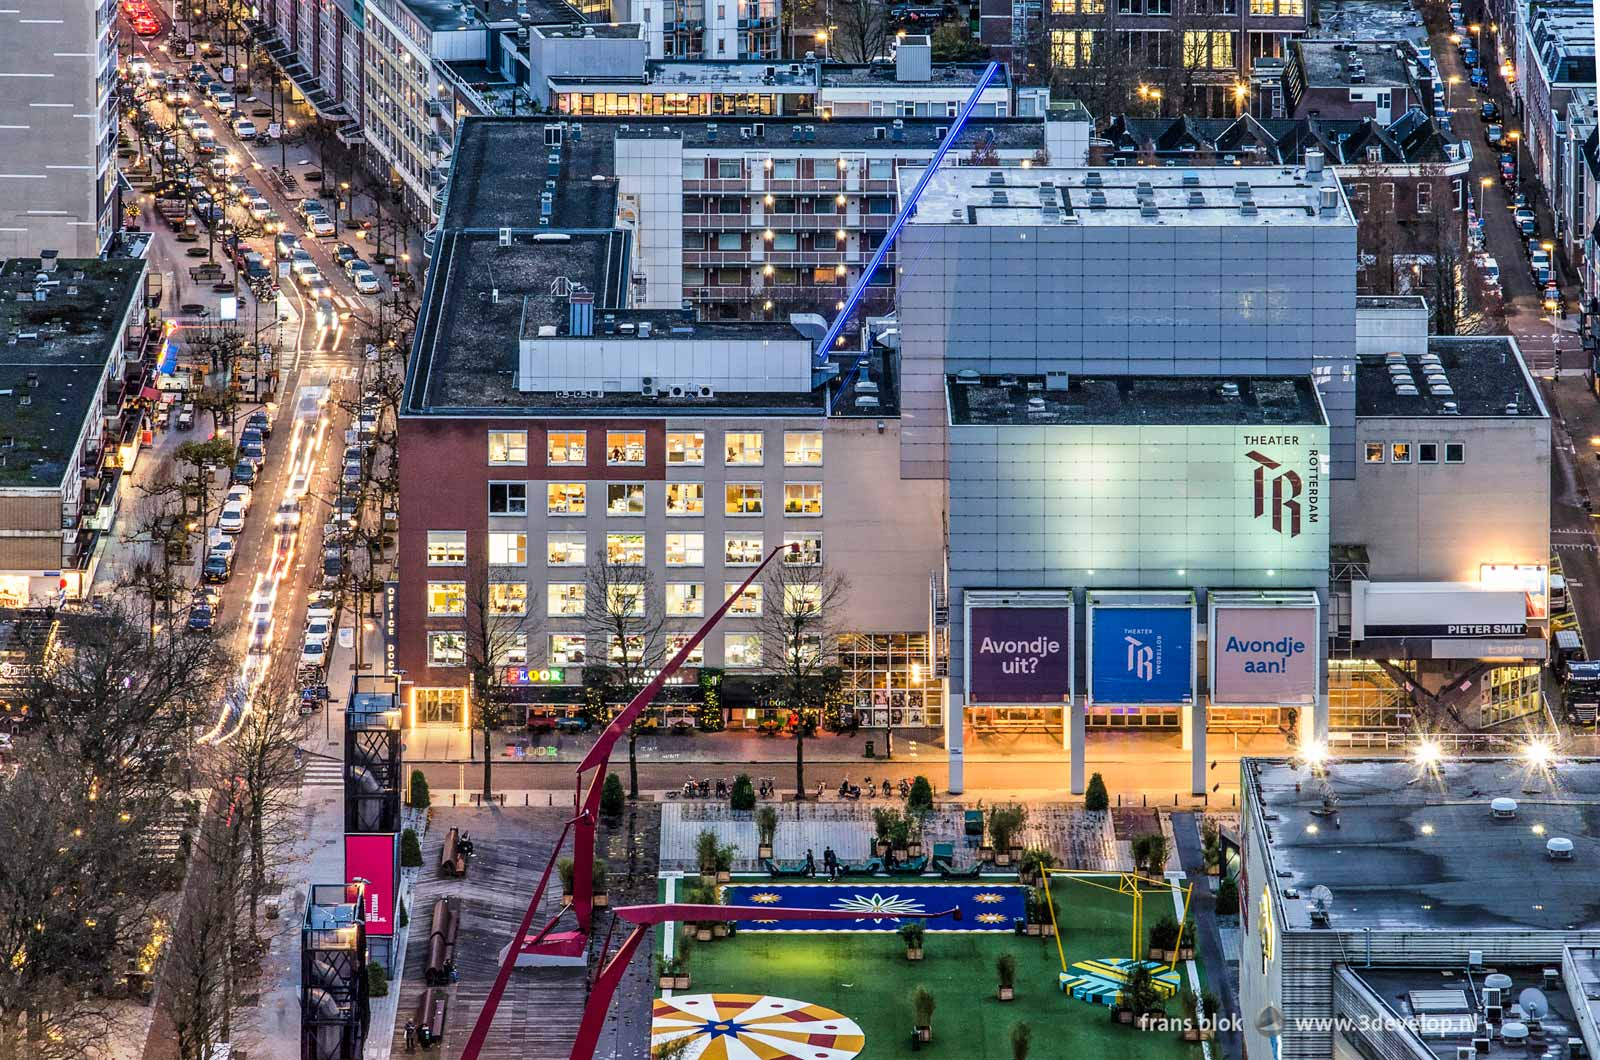 Evening photo of Rotterdamse Schouwburg, Karel Doormanstraat and Schouwburgplein, seen from the Delftse Poort building